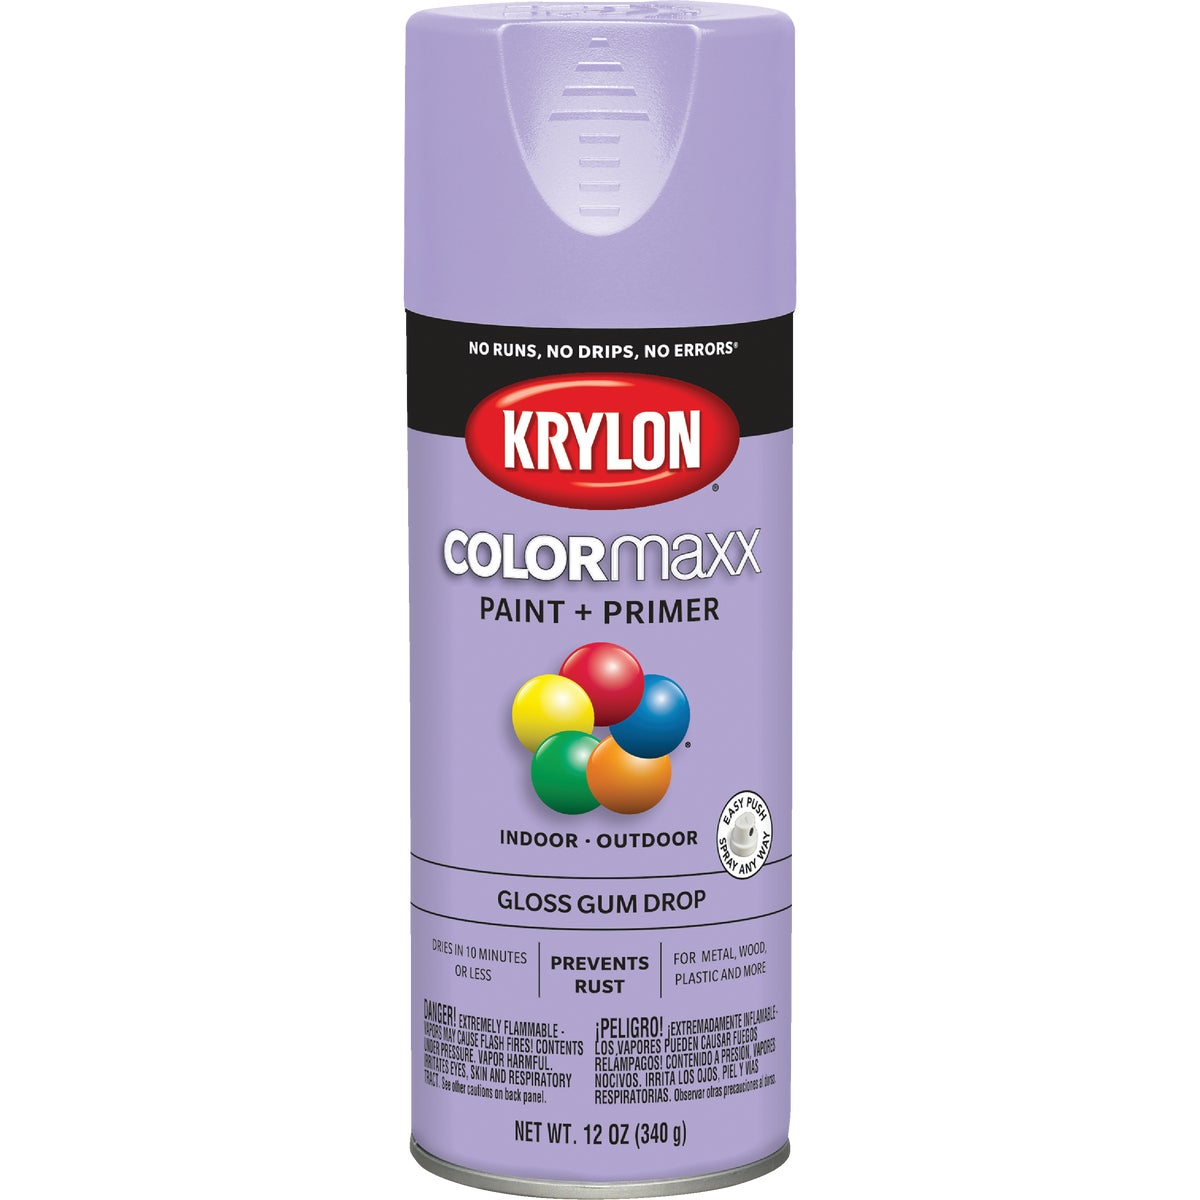 GLS GUM DROP SPRAY PAINT - 51513 by Krylon/consumer Div